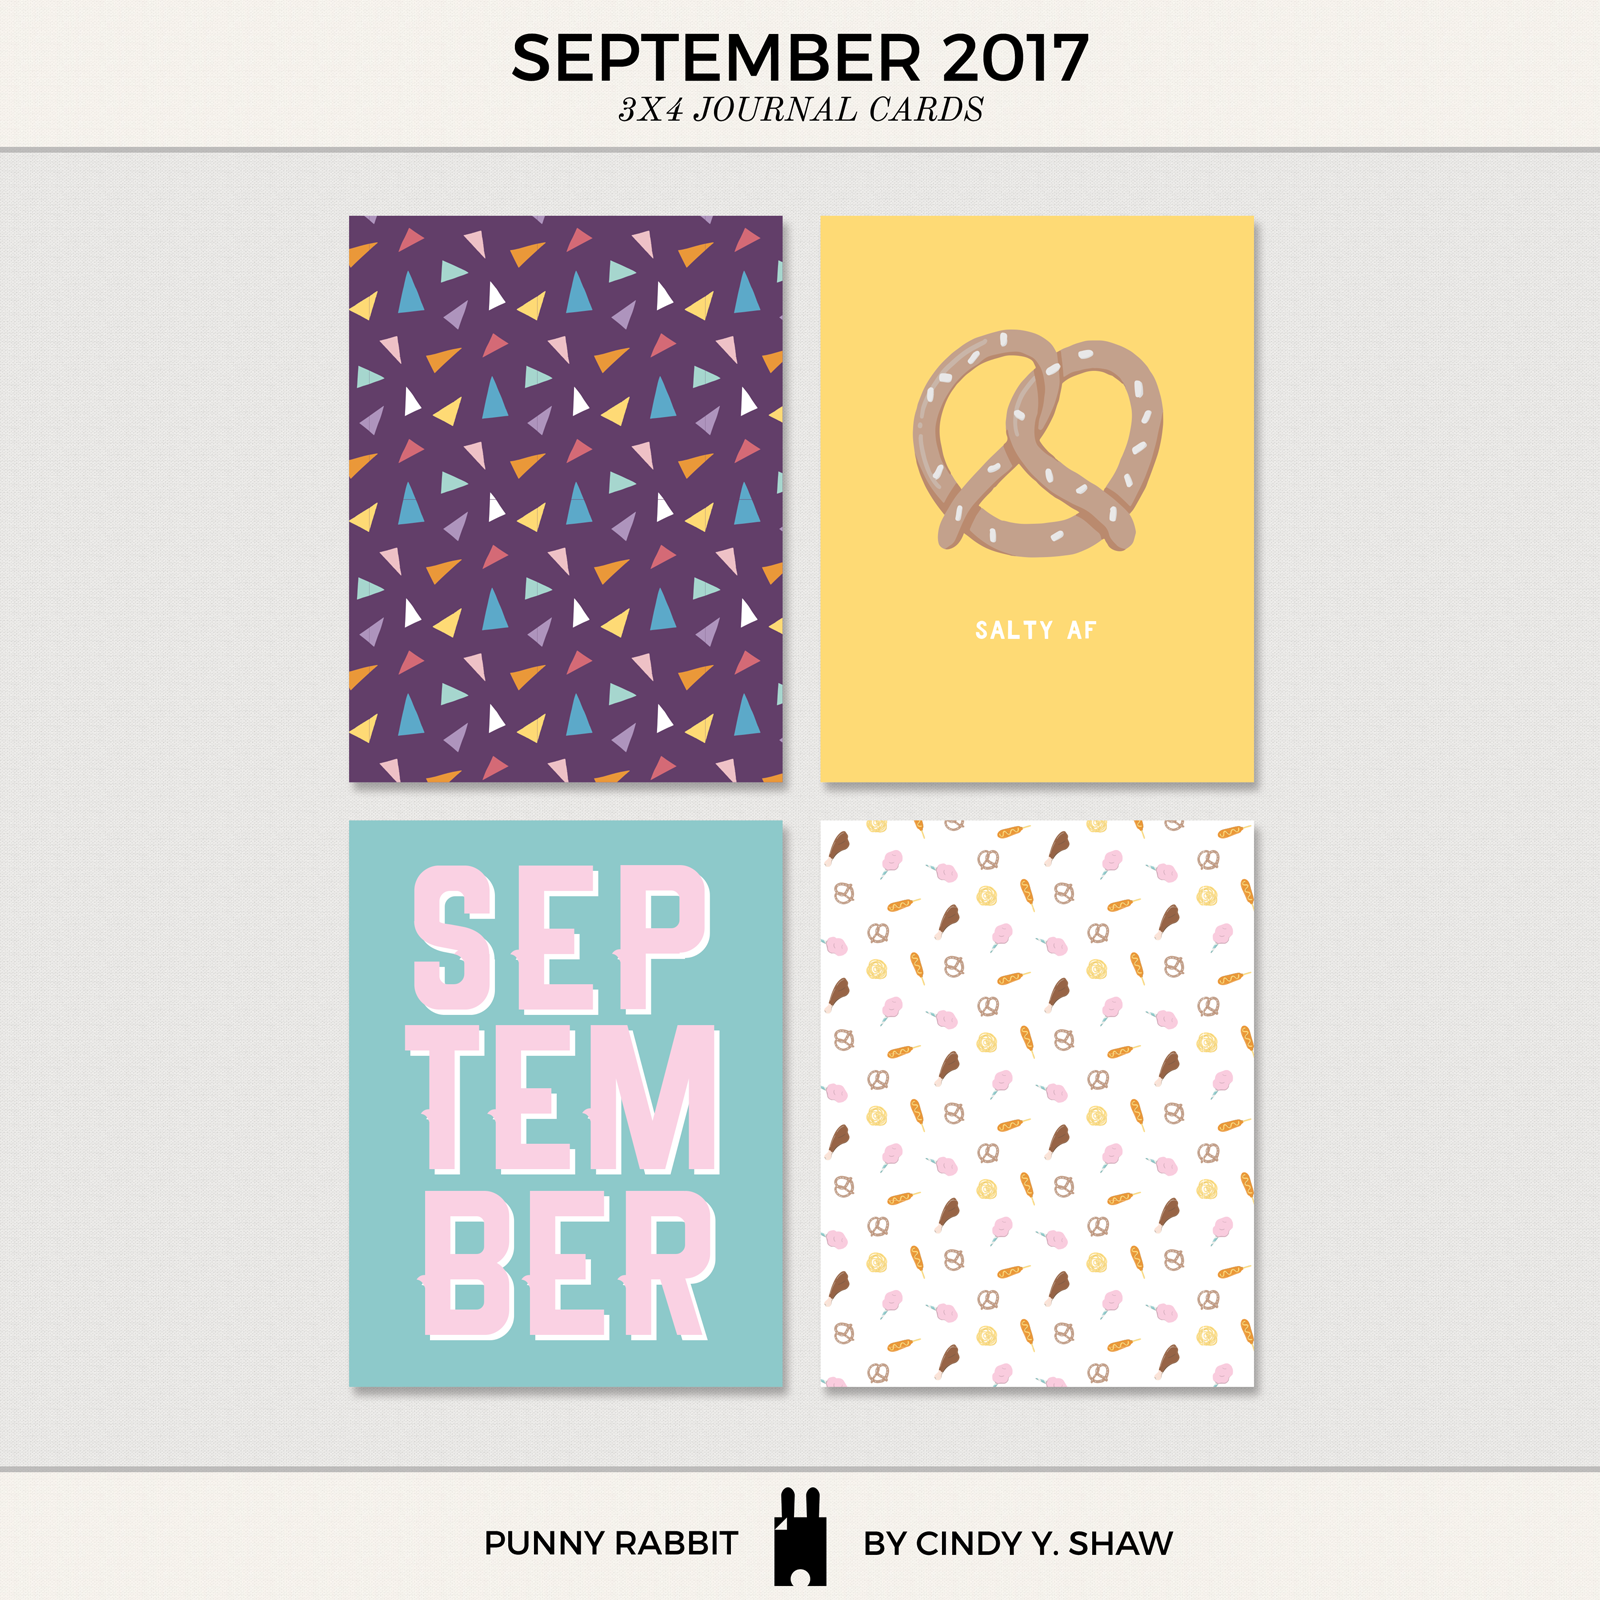 Punny-Rabbit-September-2017-Journal-Cards-Preview.png